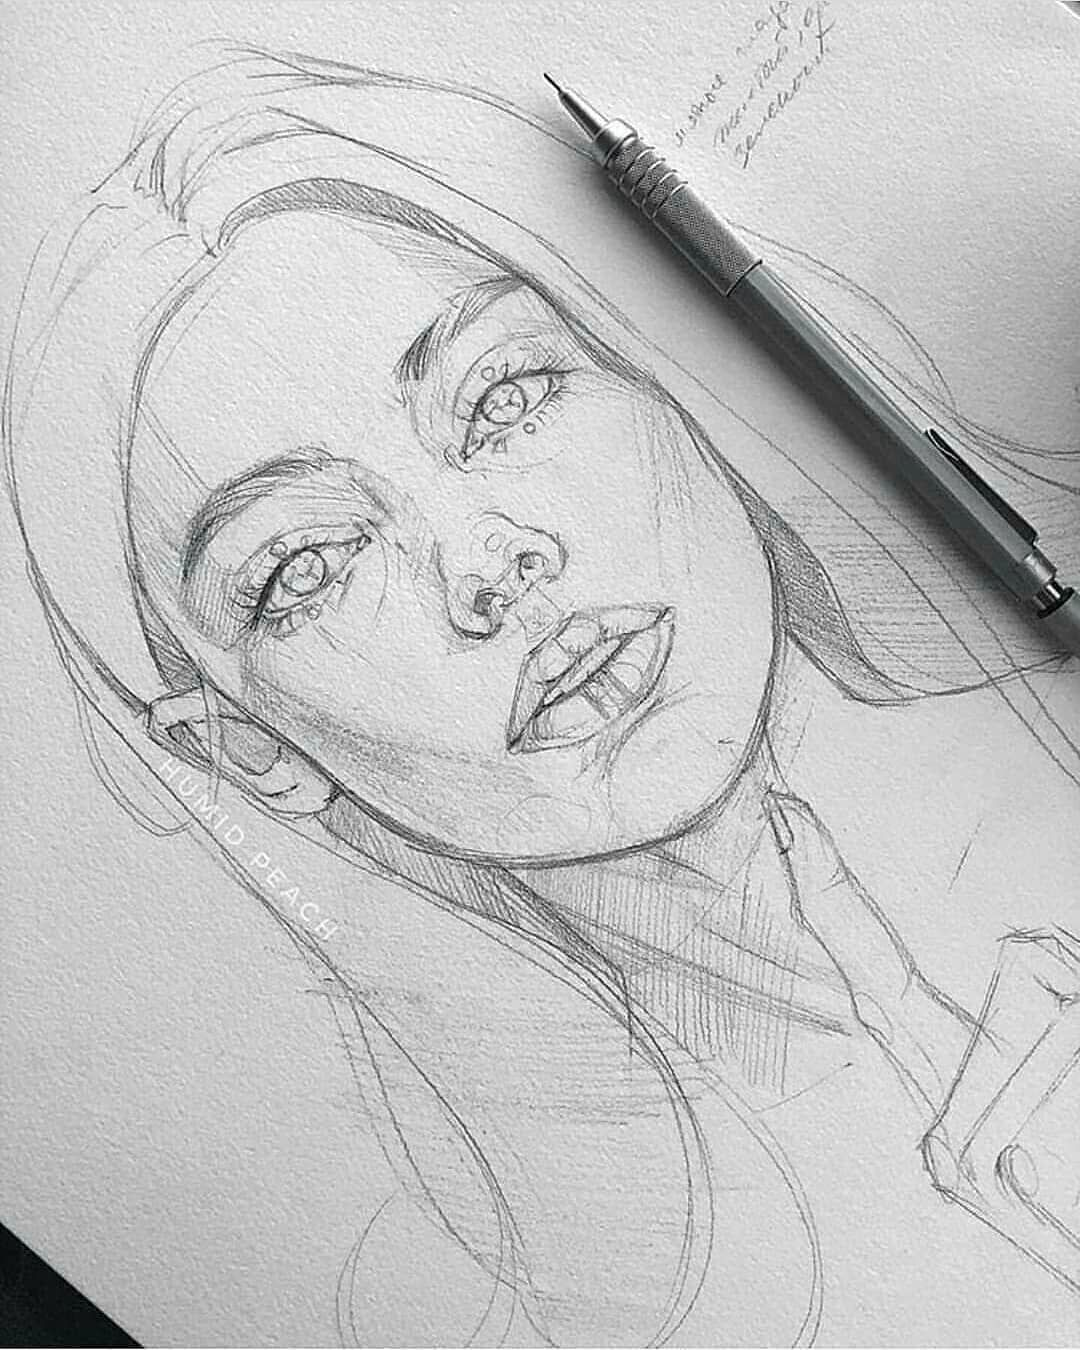 Amazing sketch! By @humid_peach . Follow us @art.discover for more #sketchart